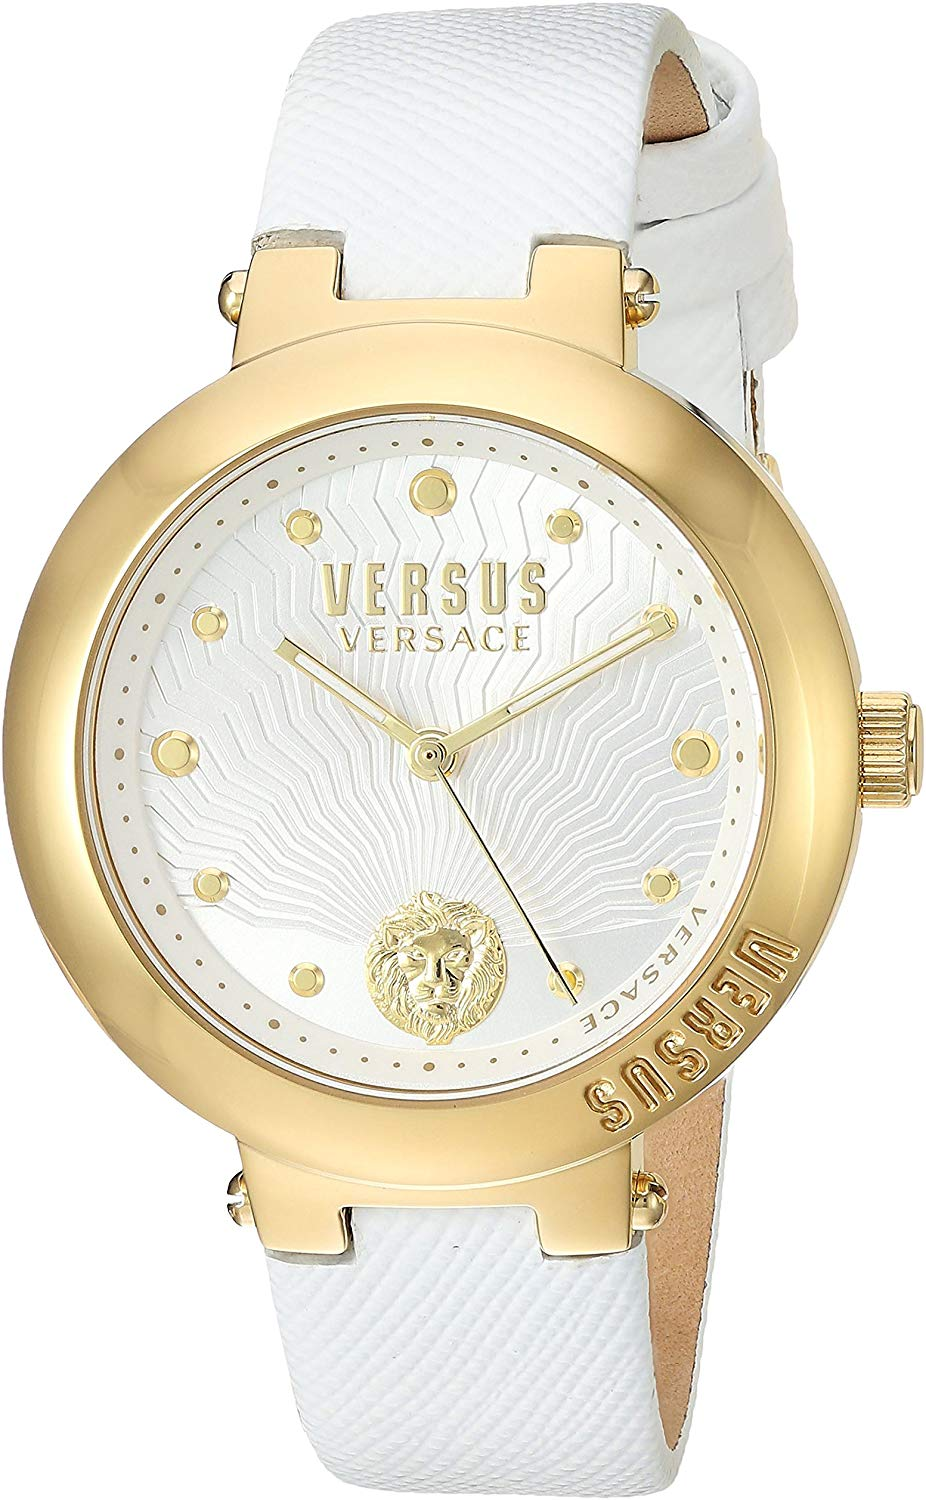 Versus by Versace Womens Analog Quartz Watch with Leather Calfskin Strap VSP370217